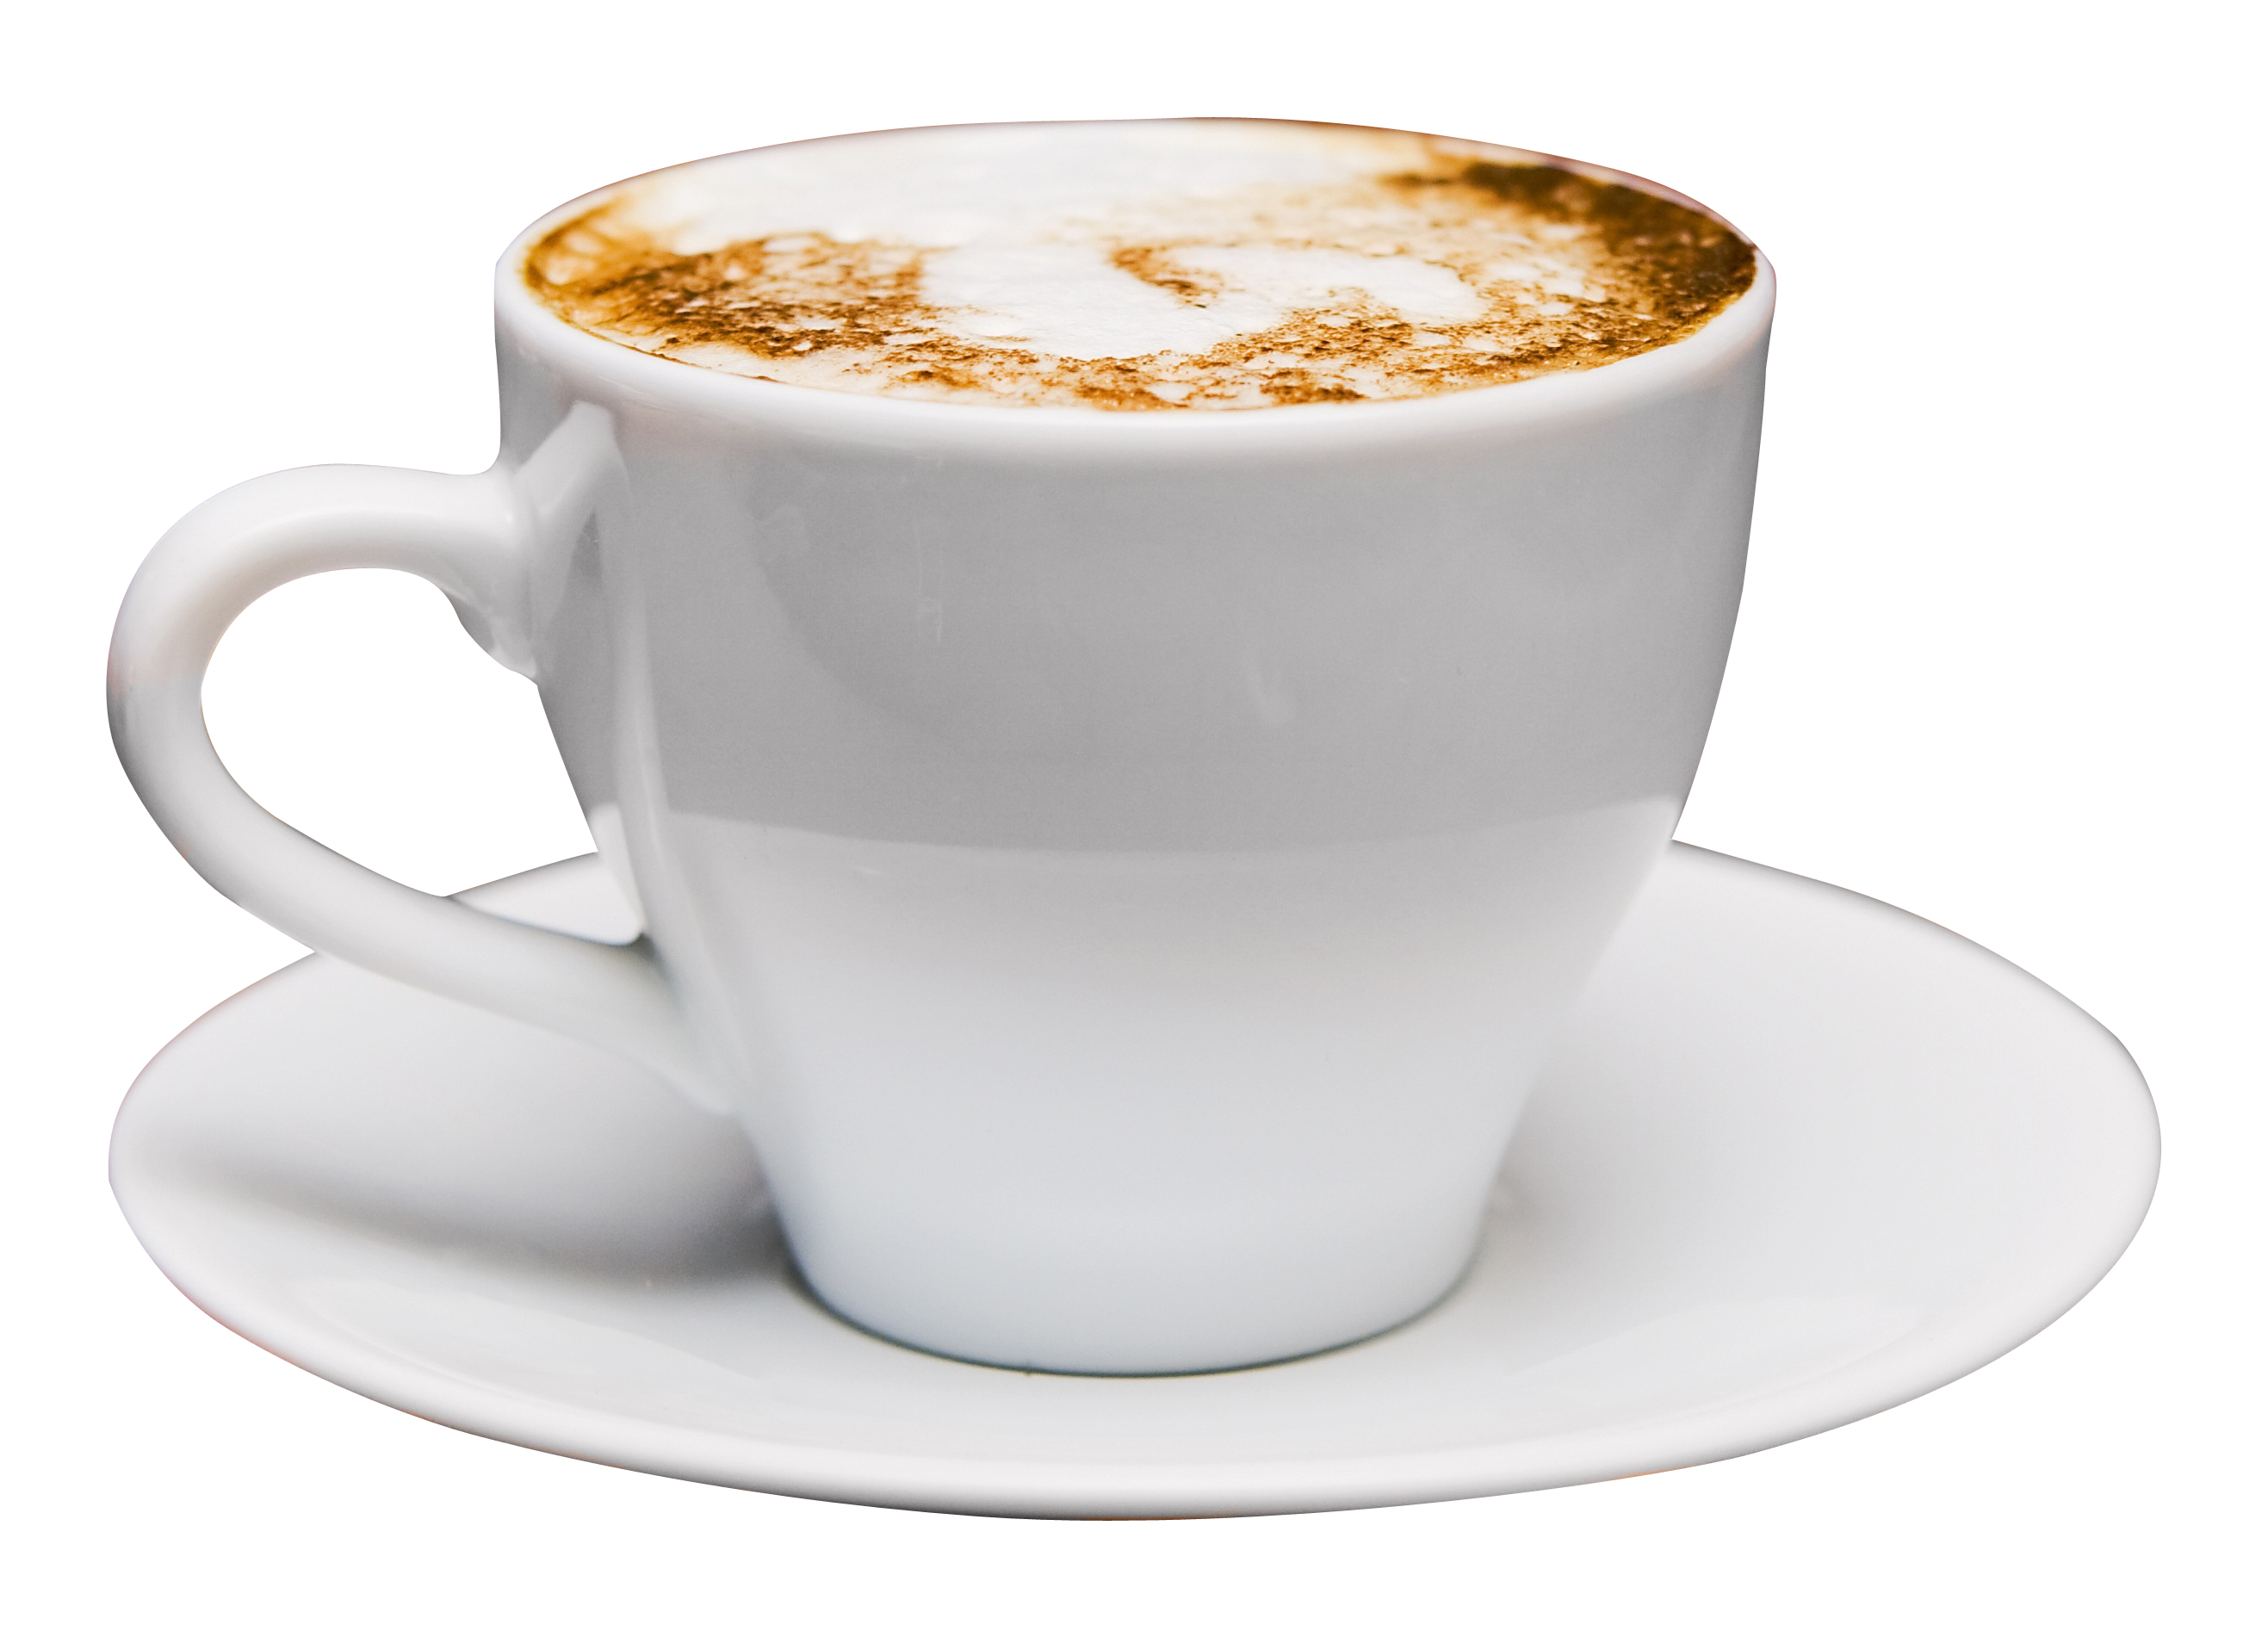 Coffe Cups Png - Coffee Cup PNG Image | Coffee png, Coffee cups, Cheap coffee maker